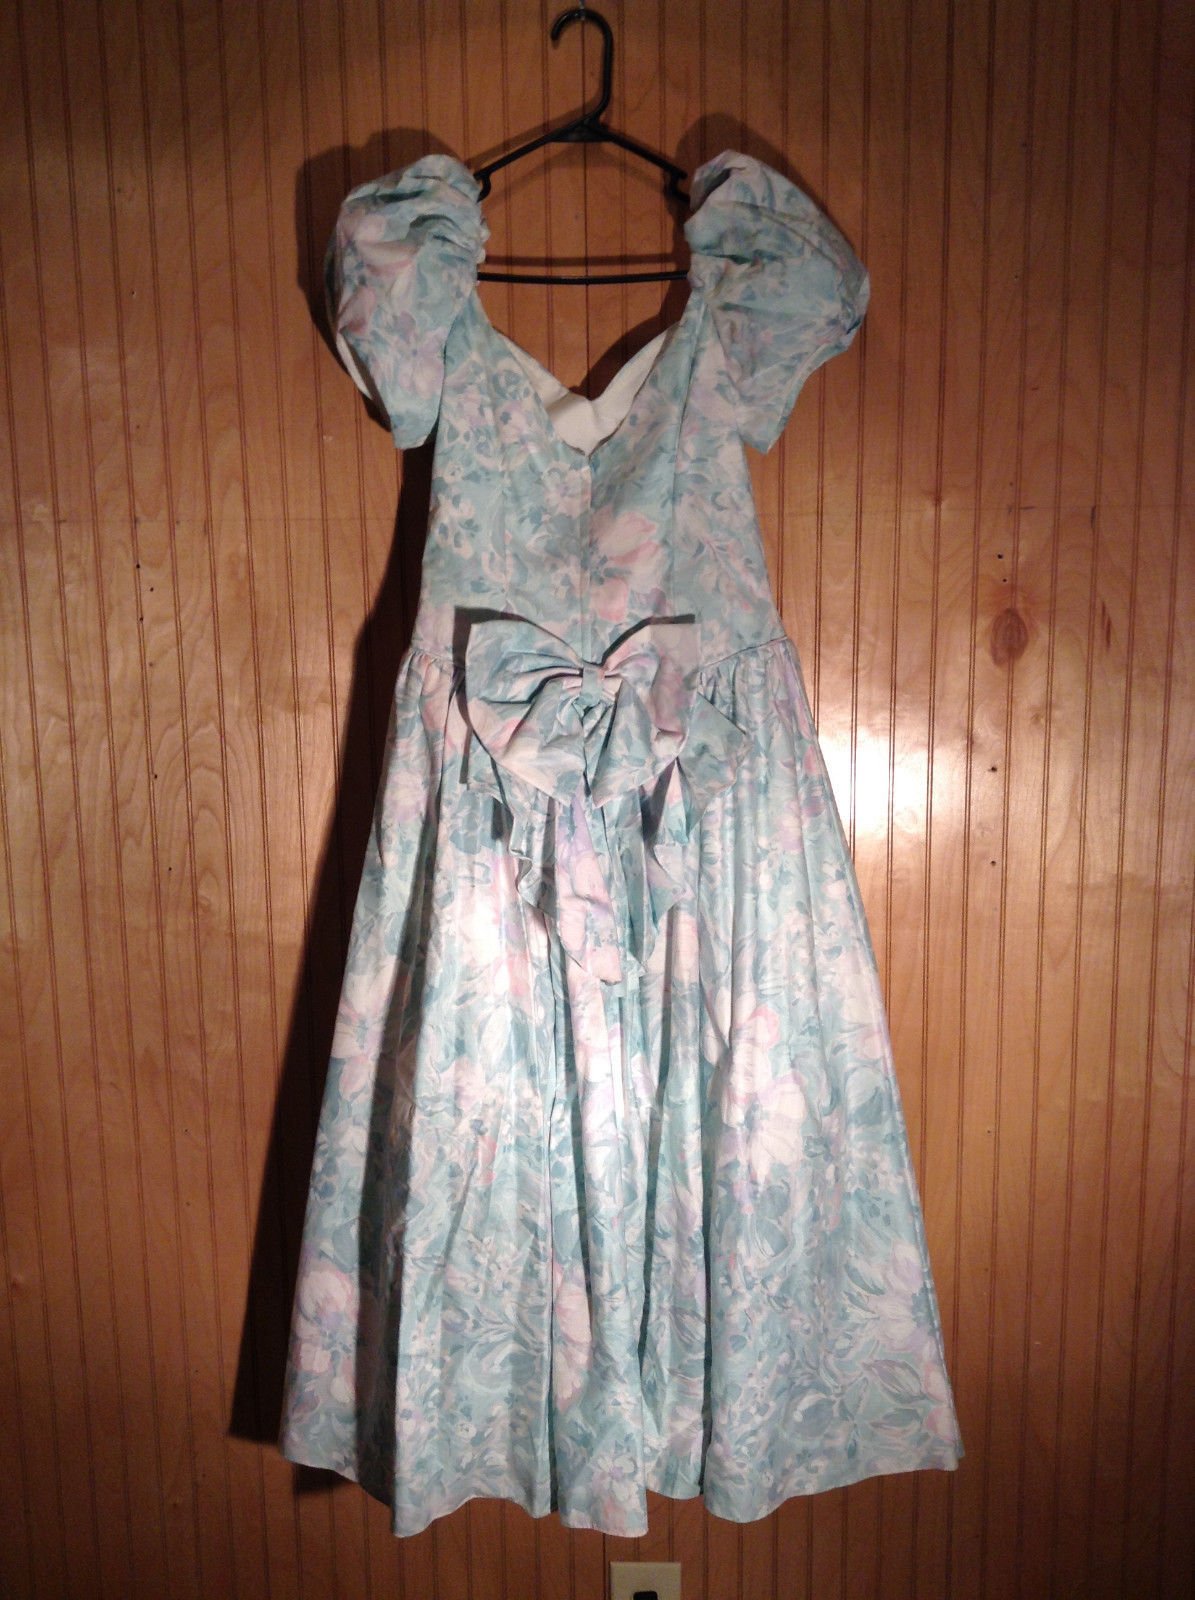 Seafoam Green Purple Floral Pattern Full Length Dress Ruffled Bottom Size 11-12